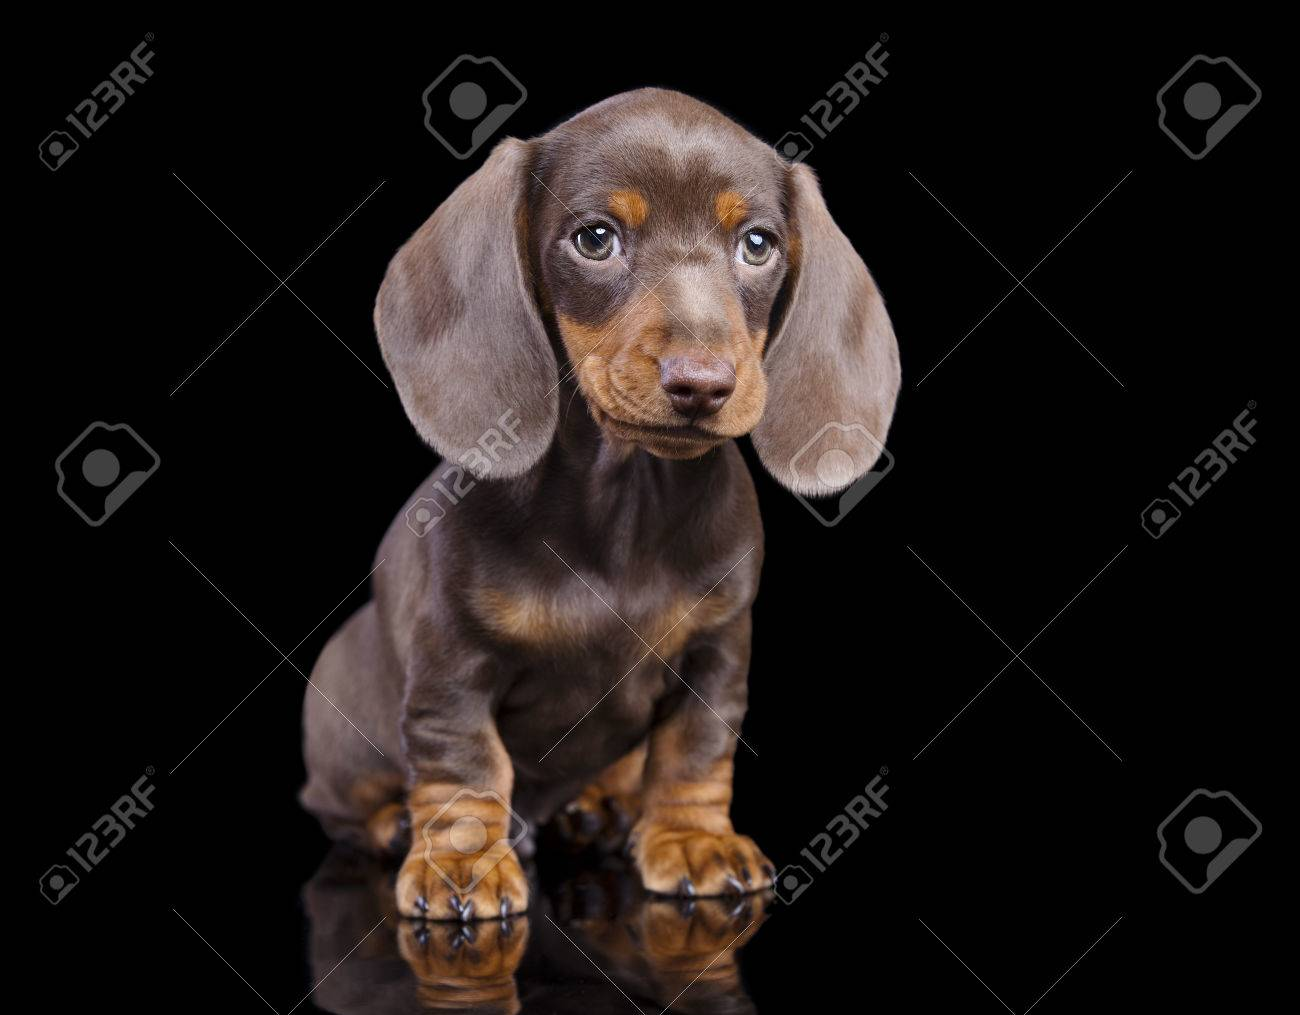 Dachshund Chocolate Puppy Stock Photo Picture And Royalty Free Image Image 37394147